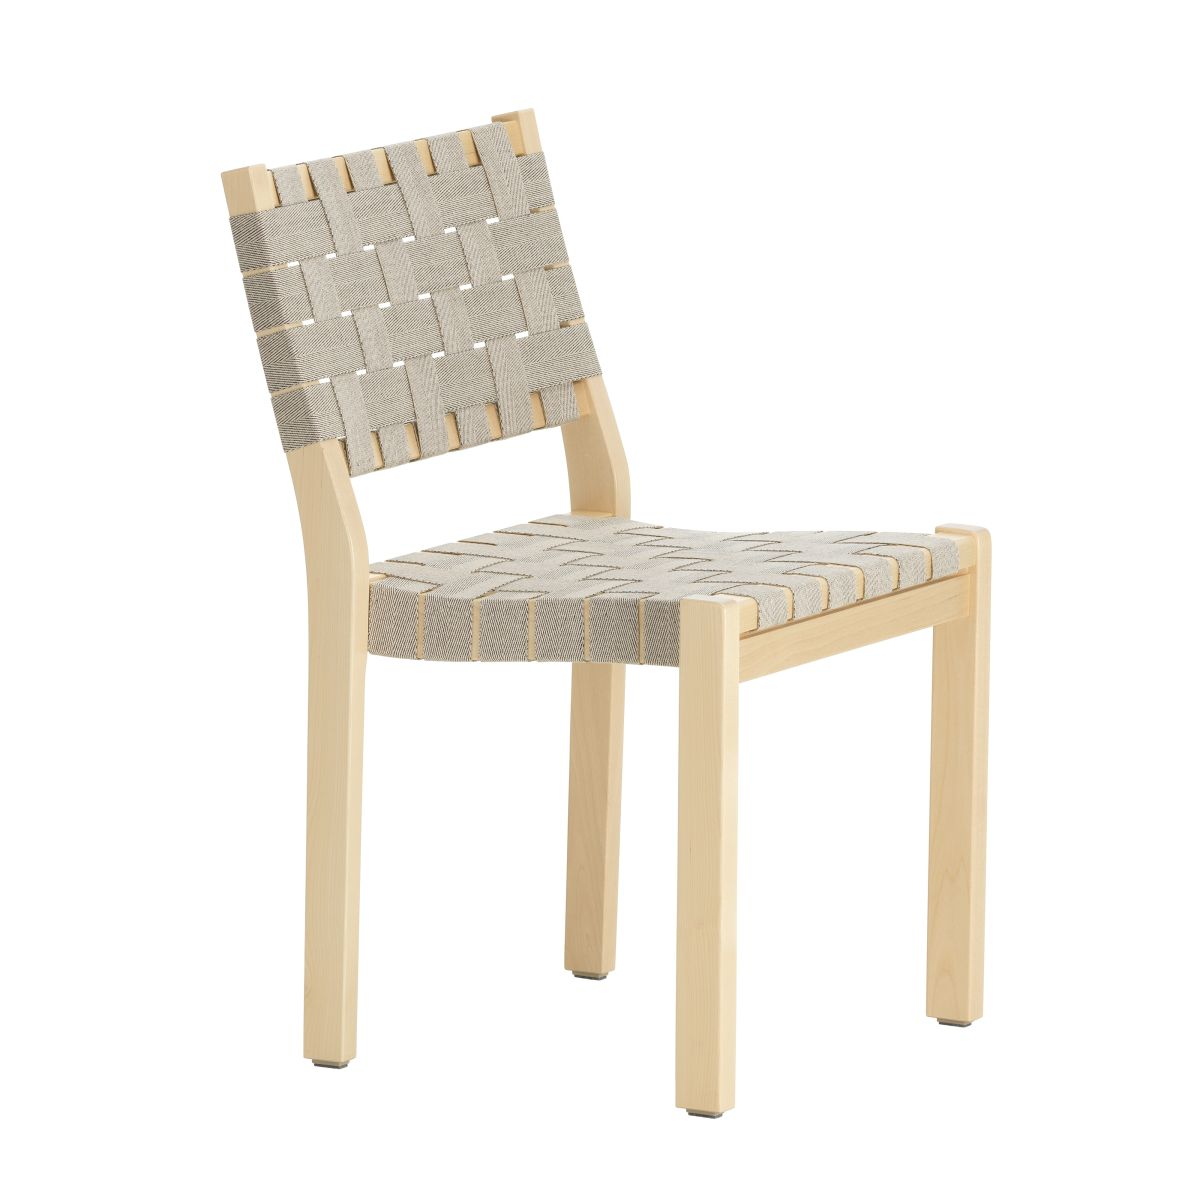 Chair 611 Clear Lacquered Birch Natural Black New Webbing F 2436480